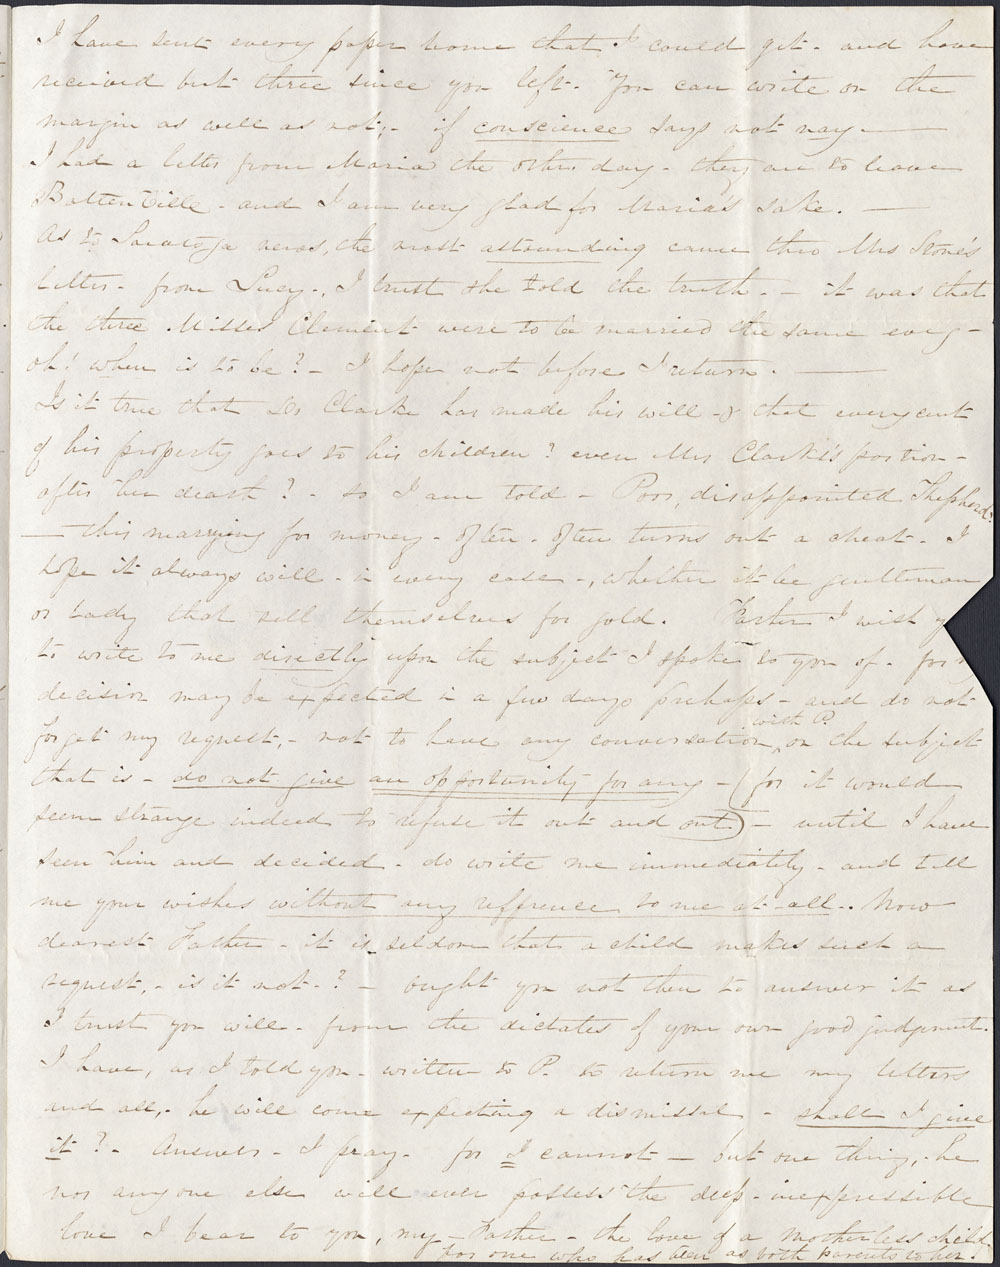 [Correspondence of Mary Westcott] 1845. (item 3)